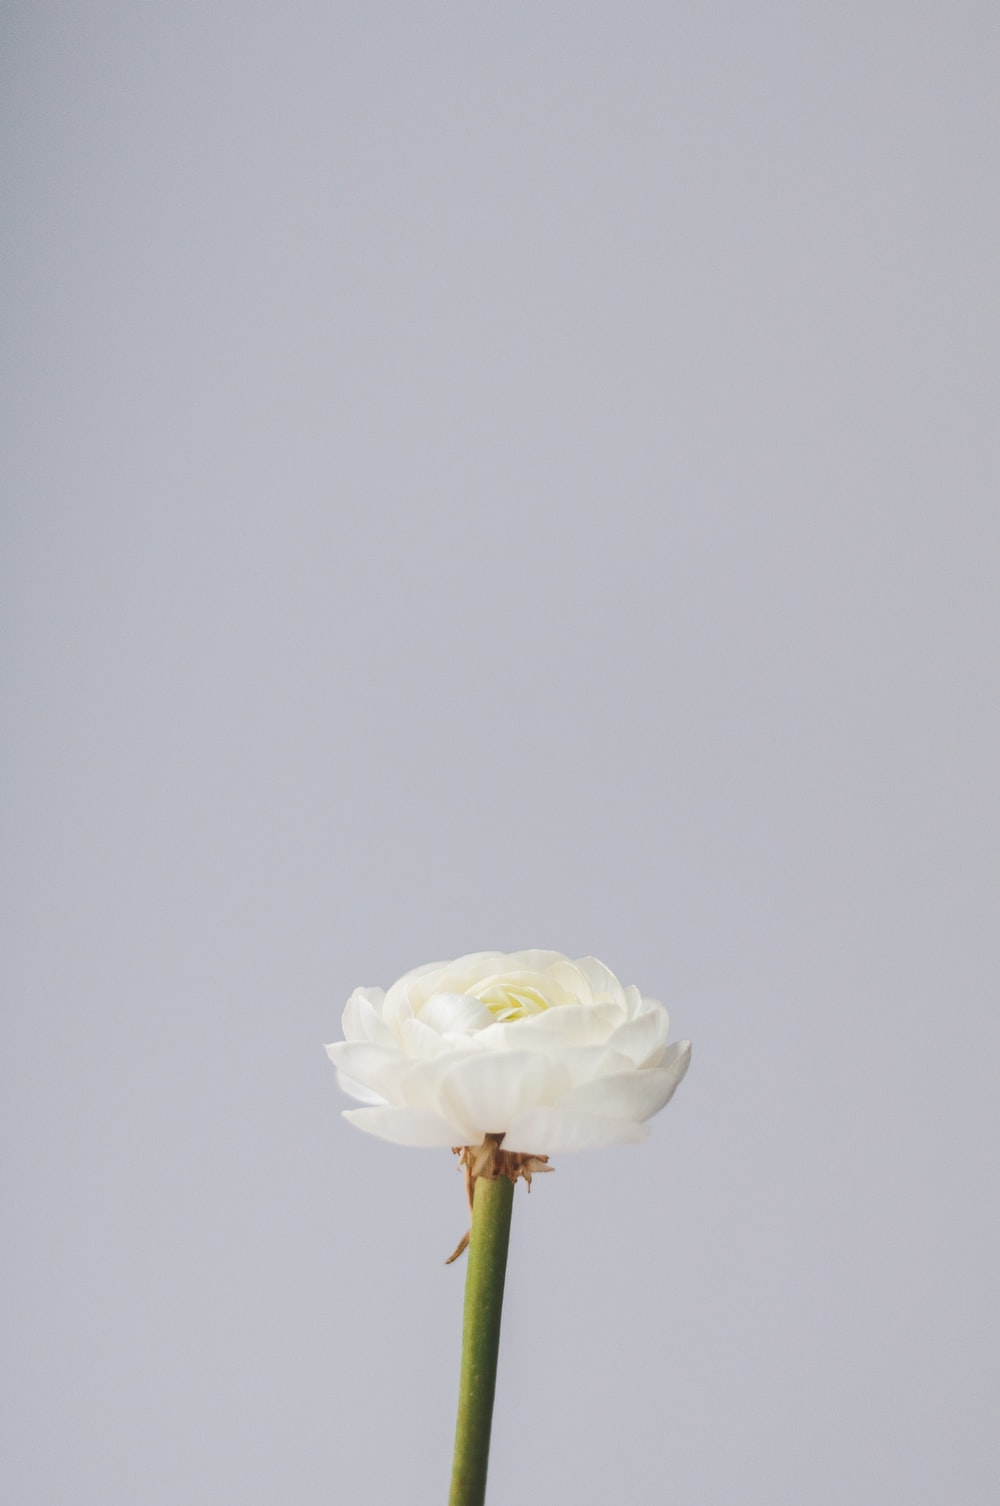 100 white flower pictures download free images on unsplash white and green flower with white background mightylinksfo